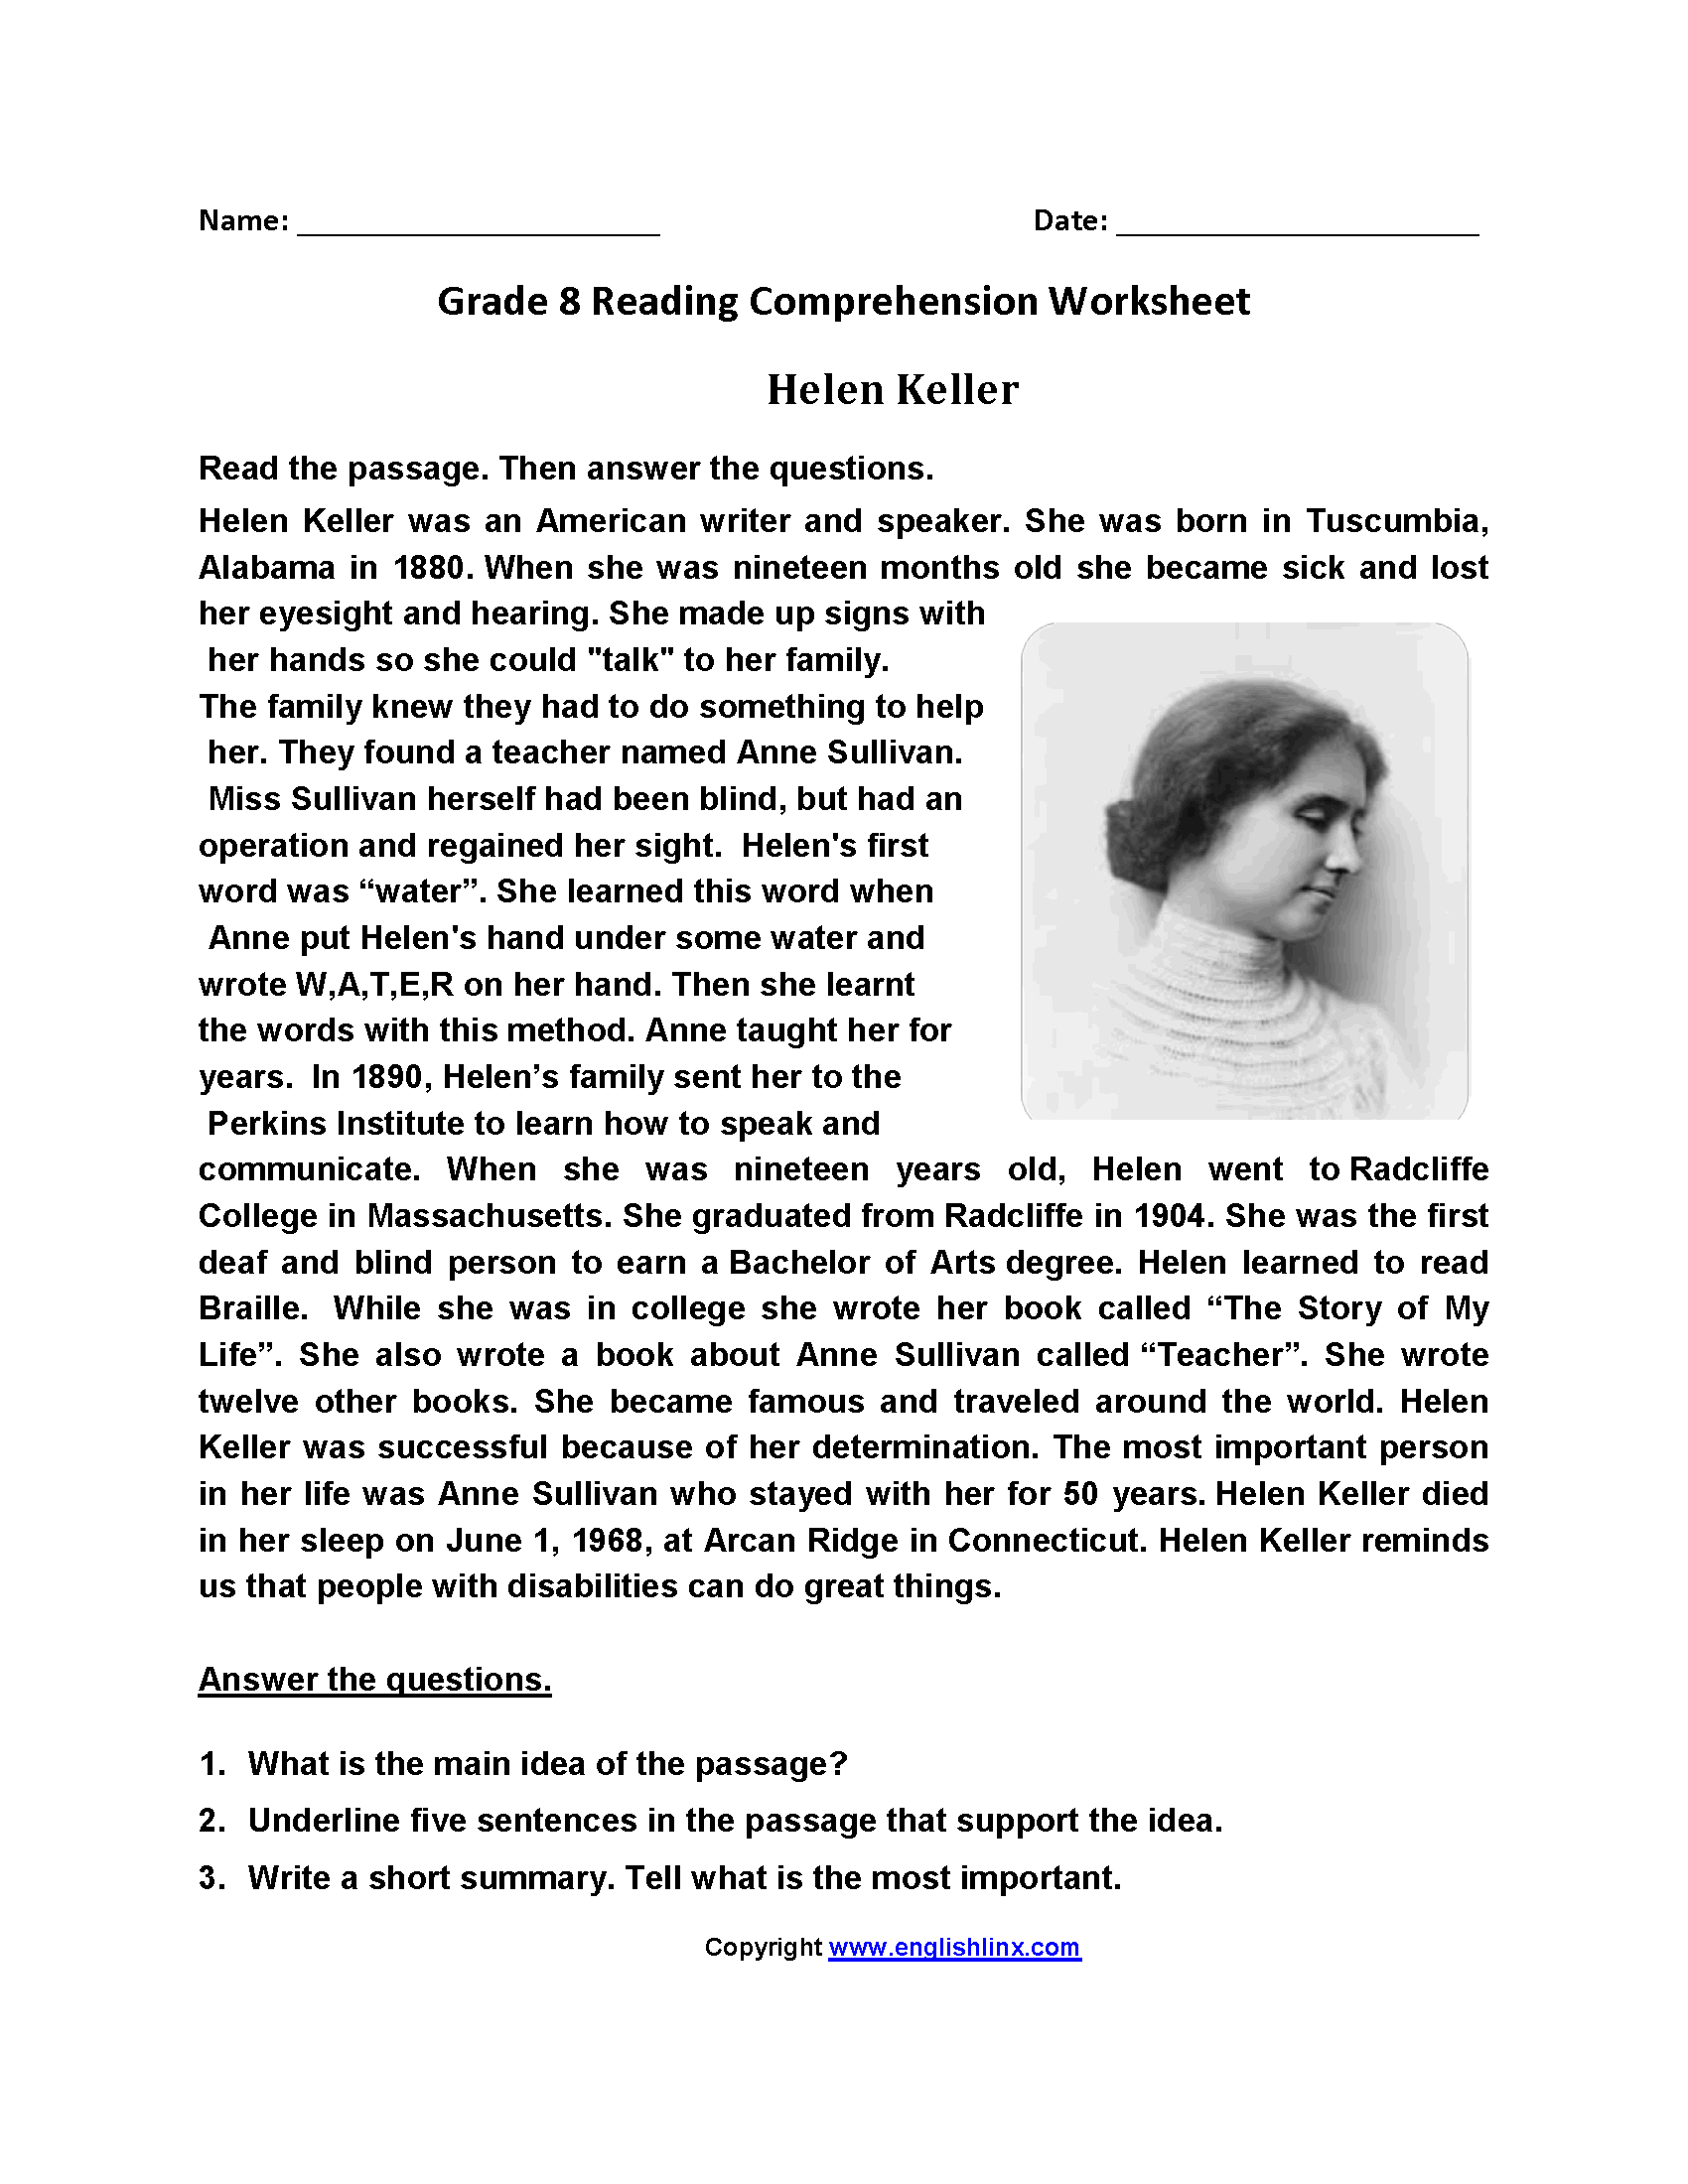 Helen Keller Eighth Grade Reading Worksheets With Images